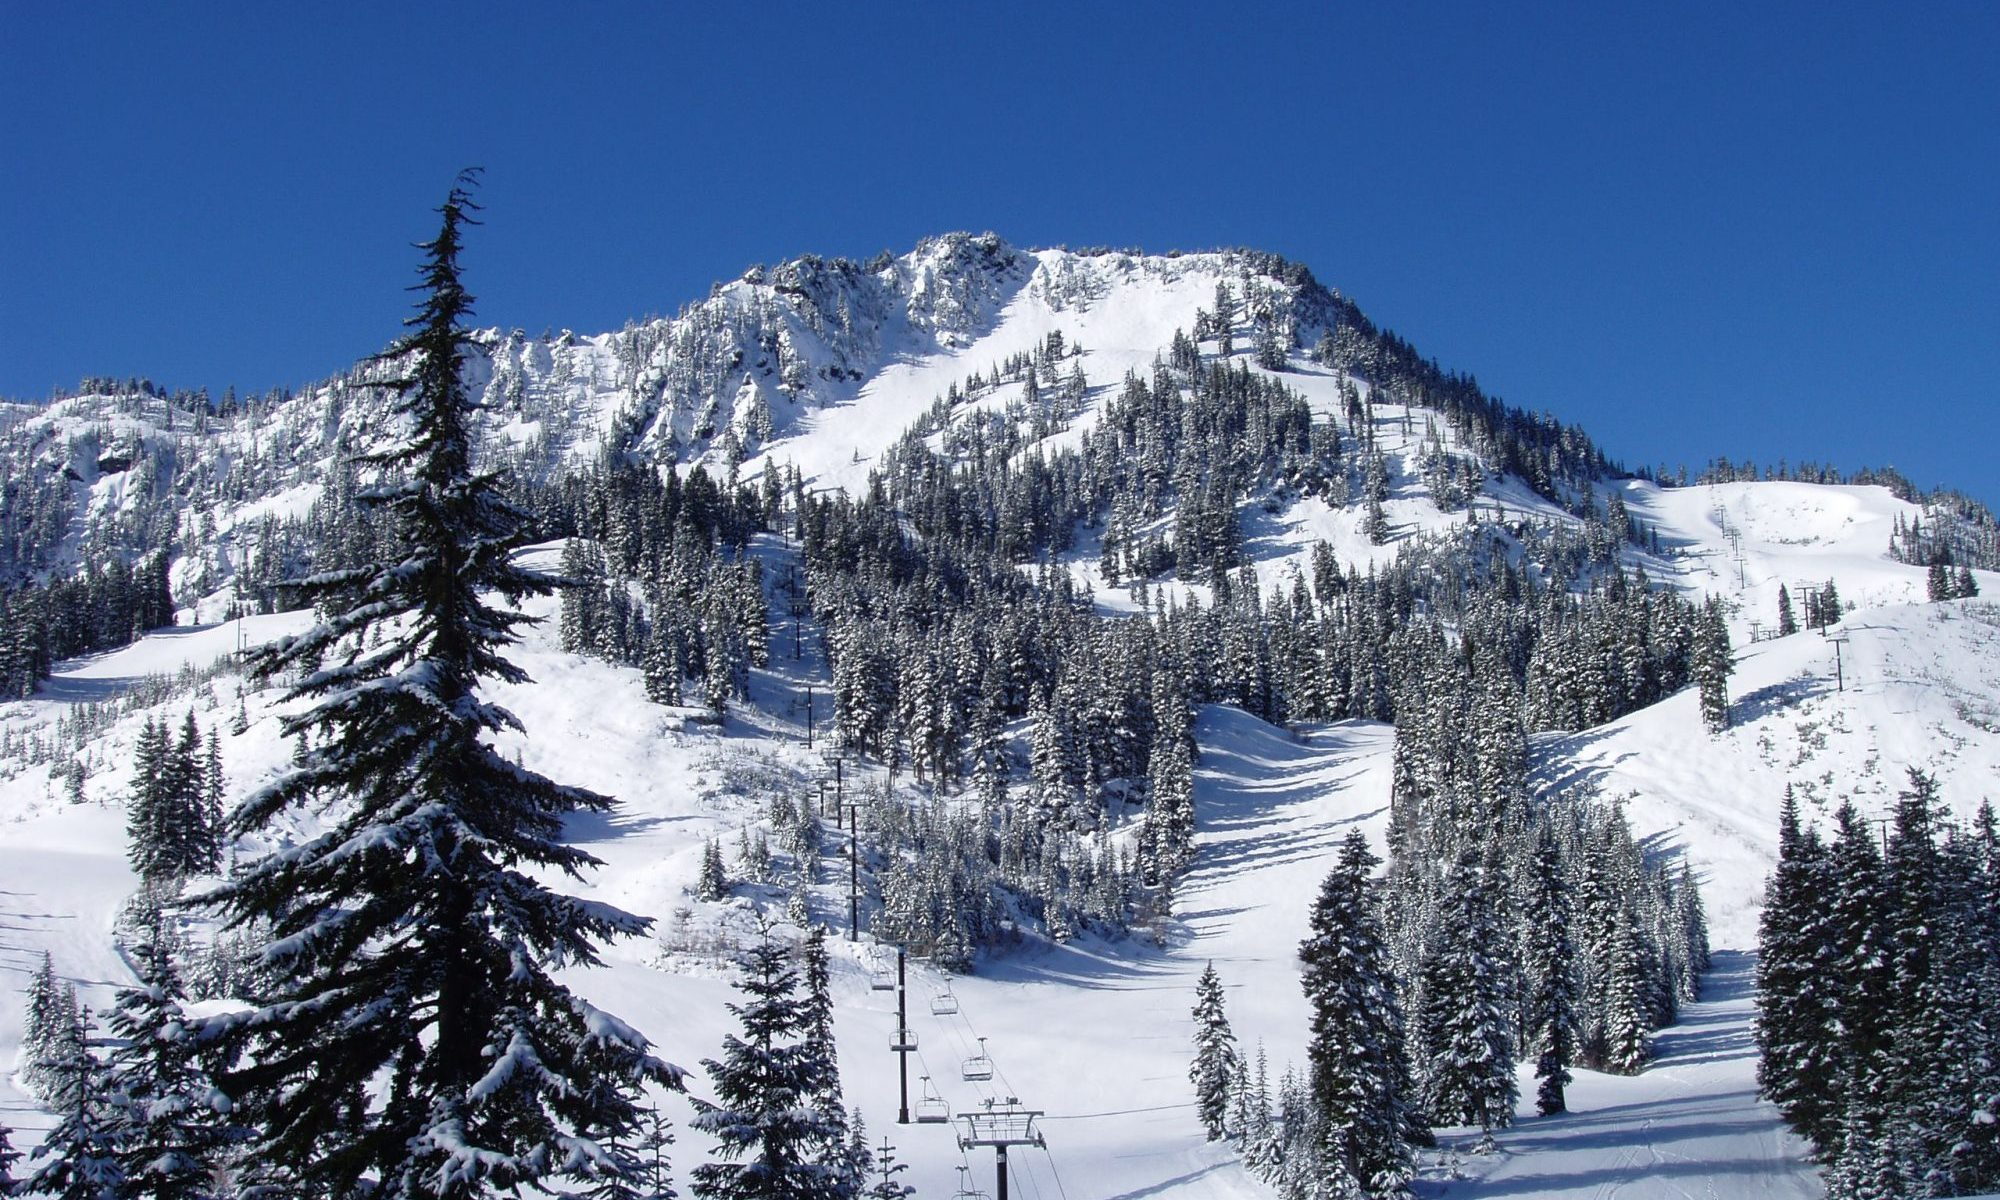 Cowboy Ridge at Stevens Pass, one of the areas bought by Vail Resorts in its last shopping spree.